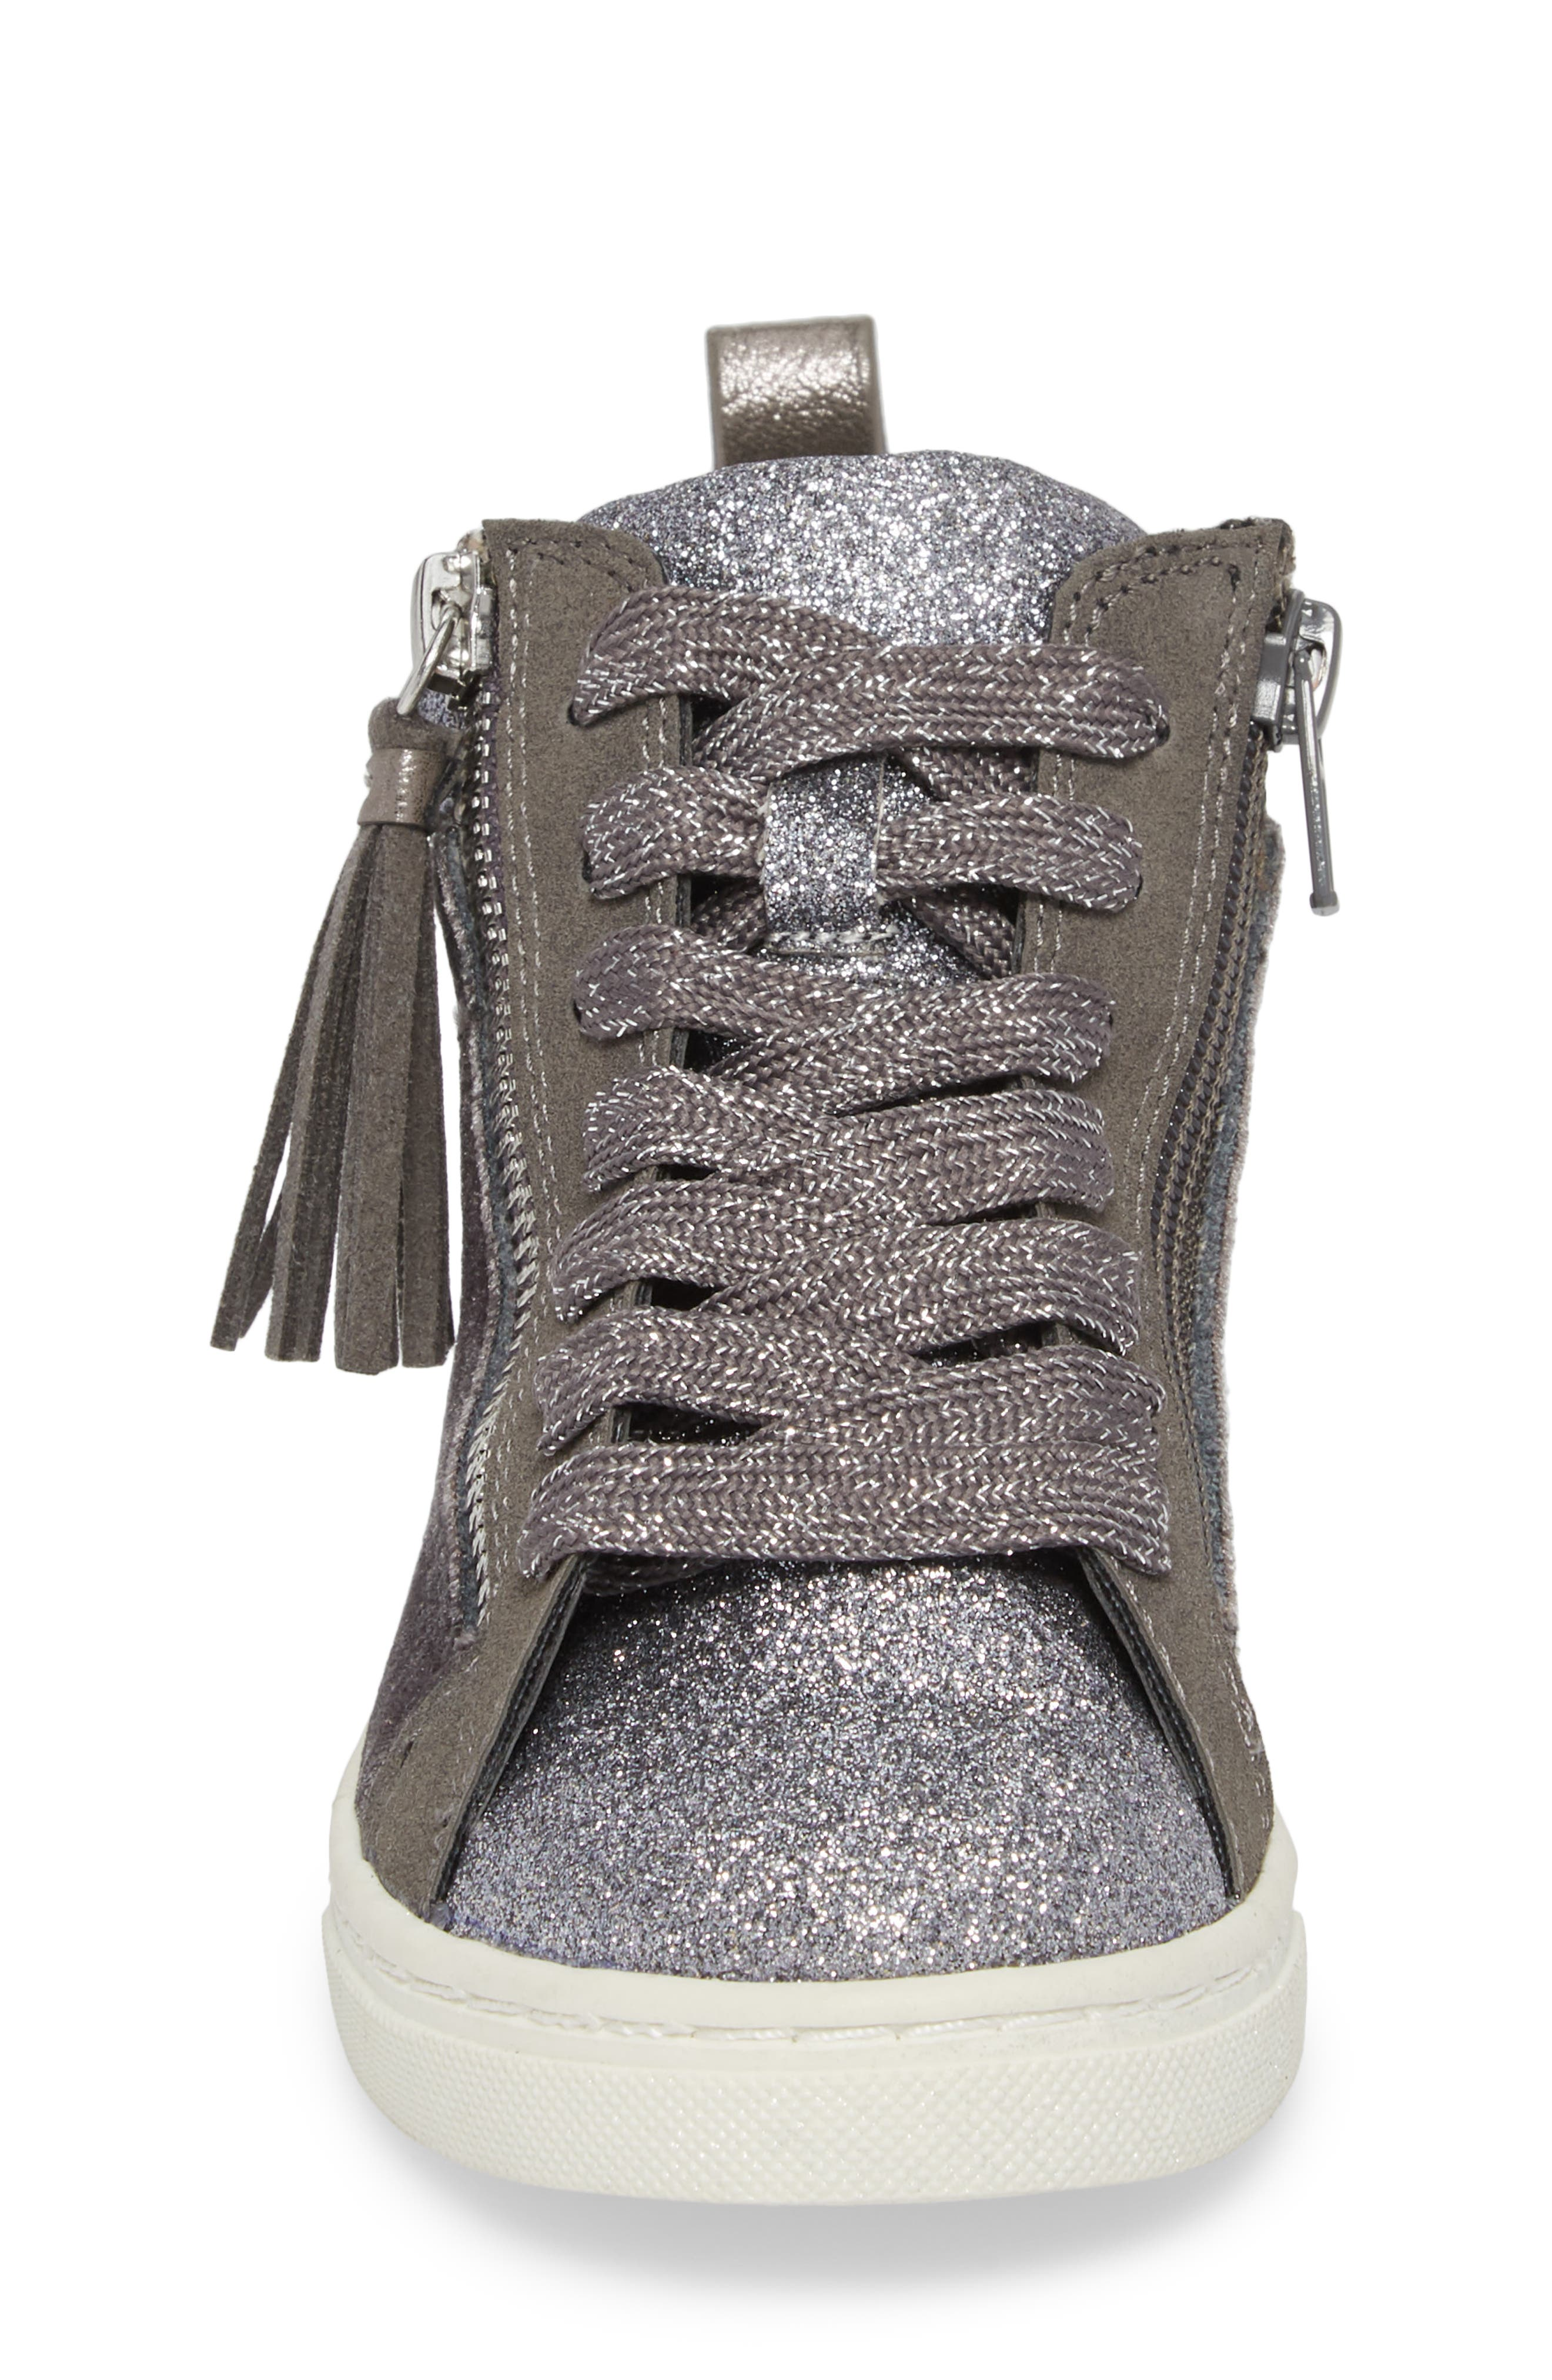 DOLCE VITA,                             Zaila Glitter High Top Sneaker,                             Alternate thumbnail 4, color,                             034